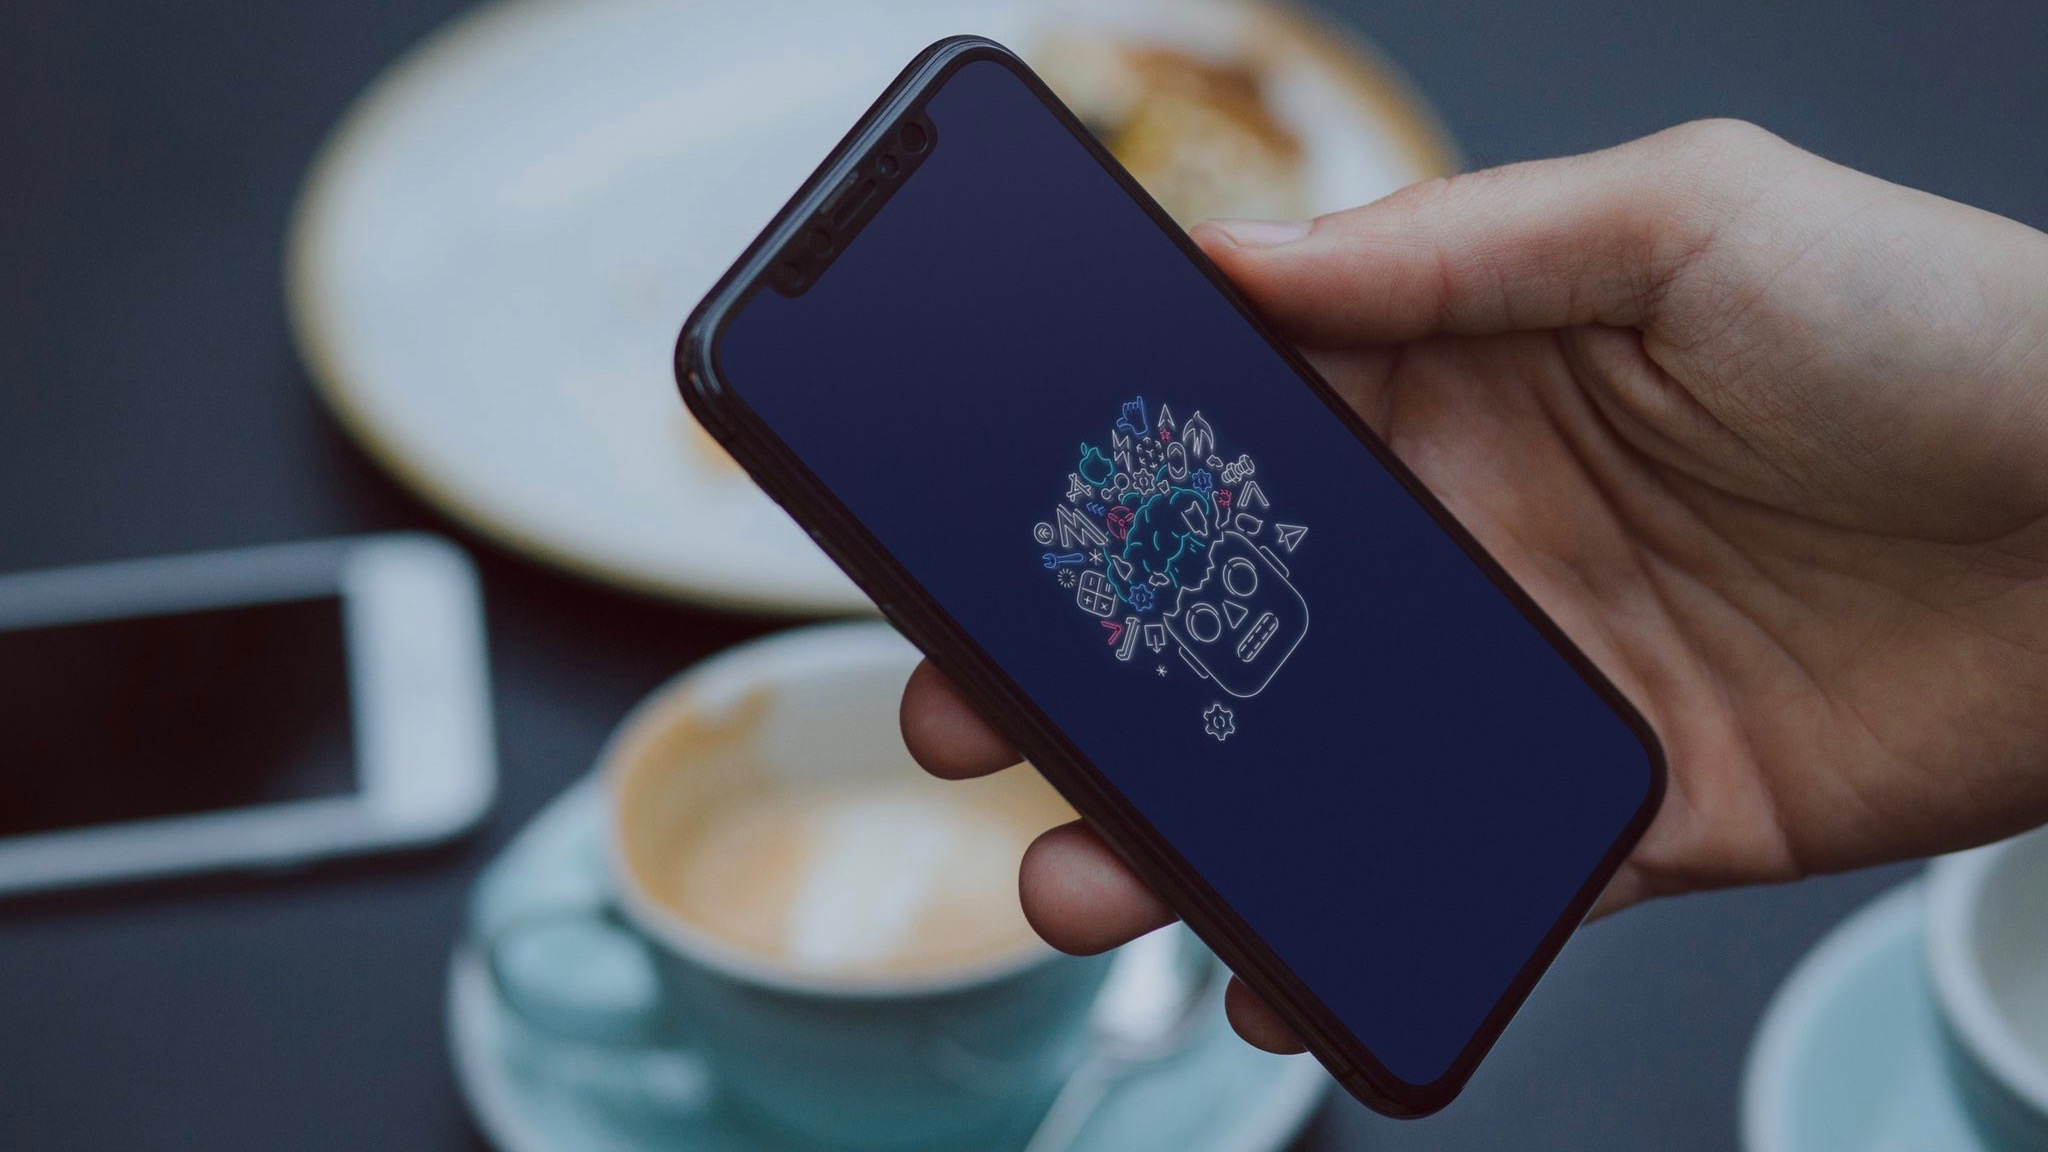 Get ready for WWDC 2019 with these iPhone, iPad, and Mac wallpapers inspired by Apple's graphics